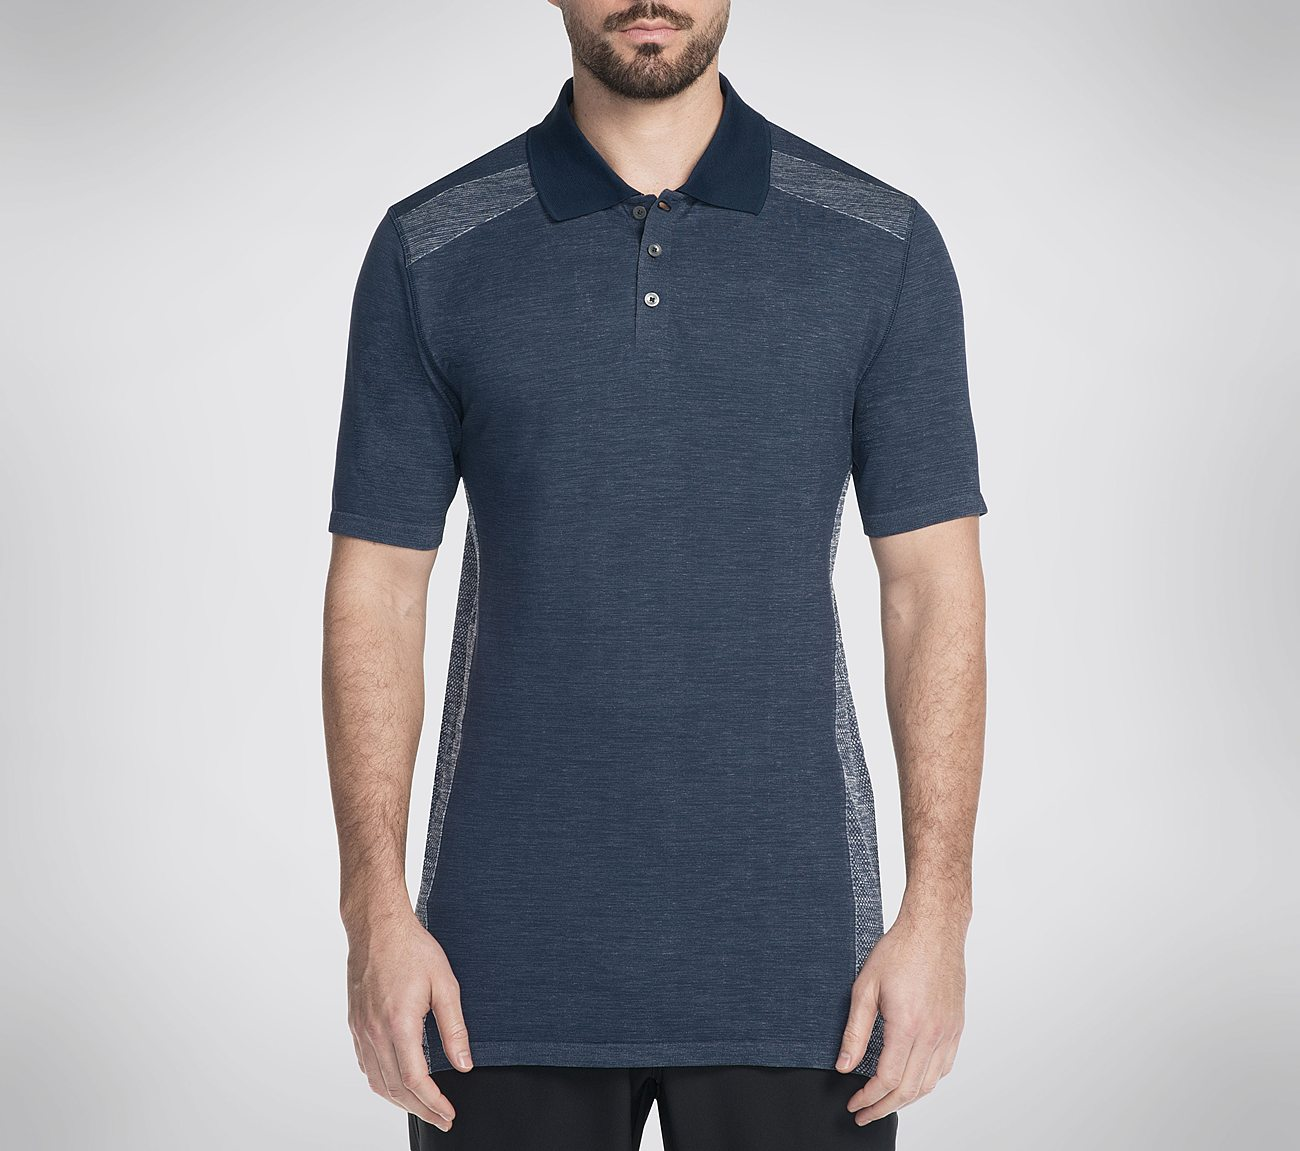 Skechers GO GOLF Knit Seamless Polo Shirt